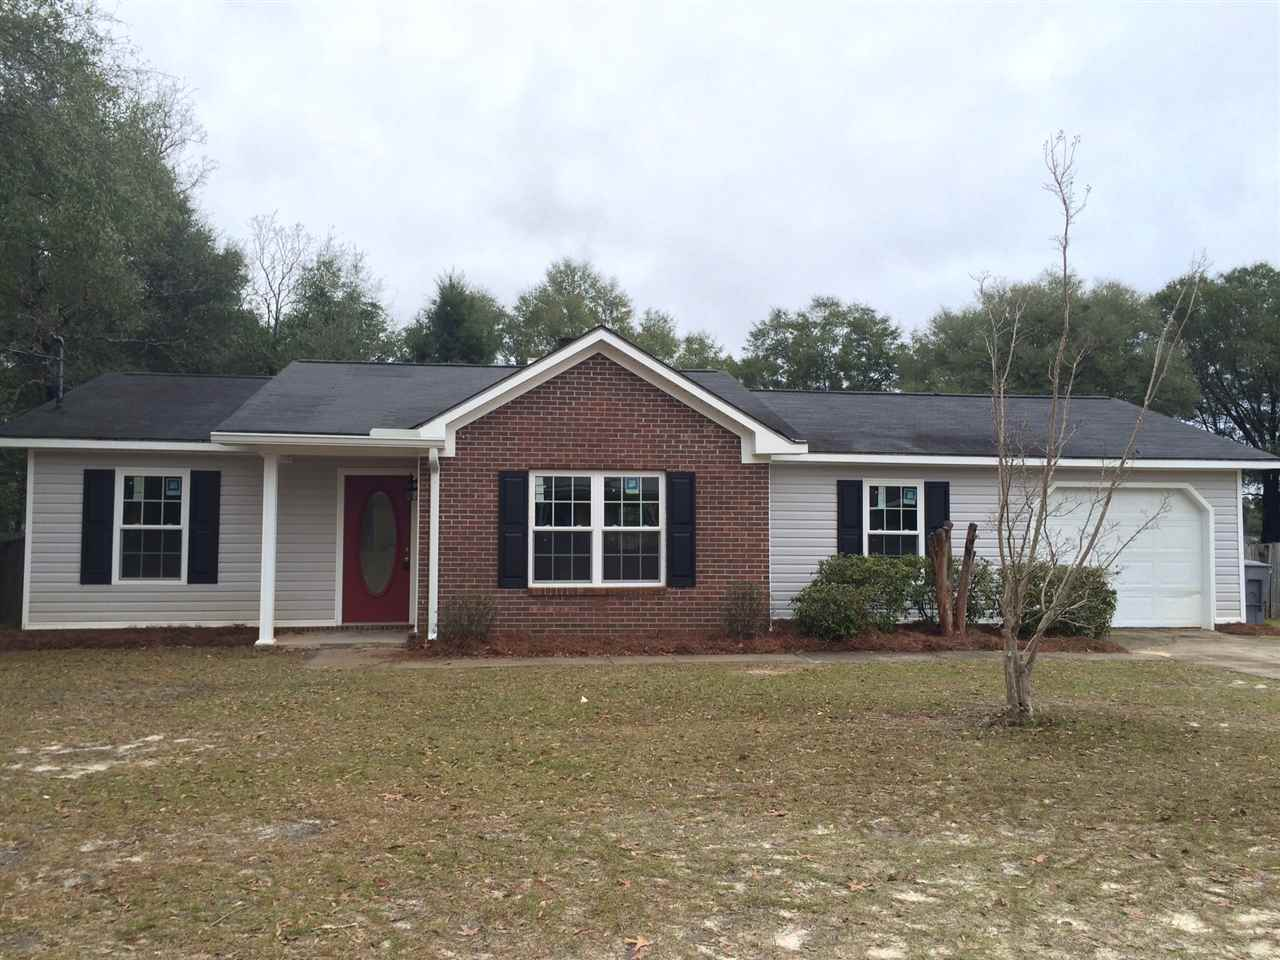 210 Skyline, Daleville, Alabama 36322